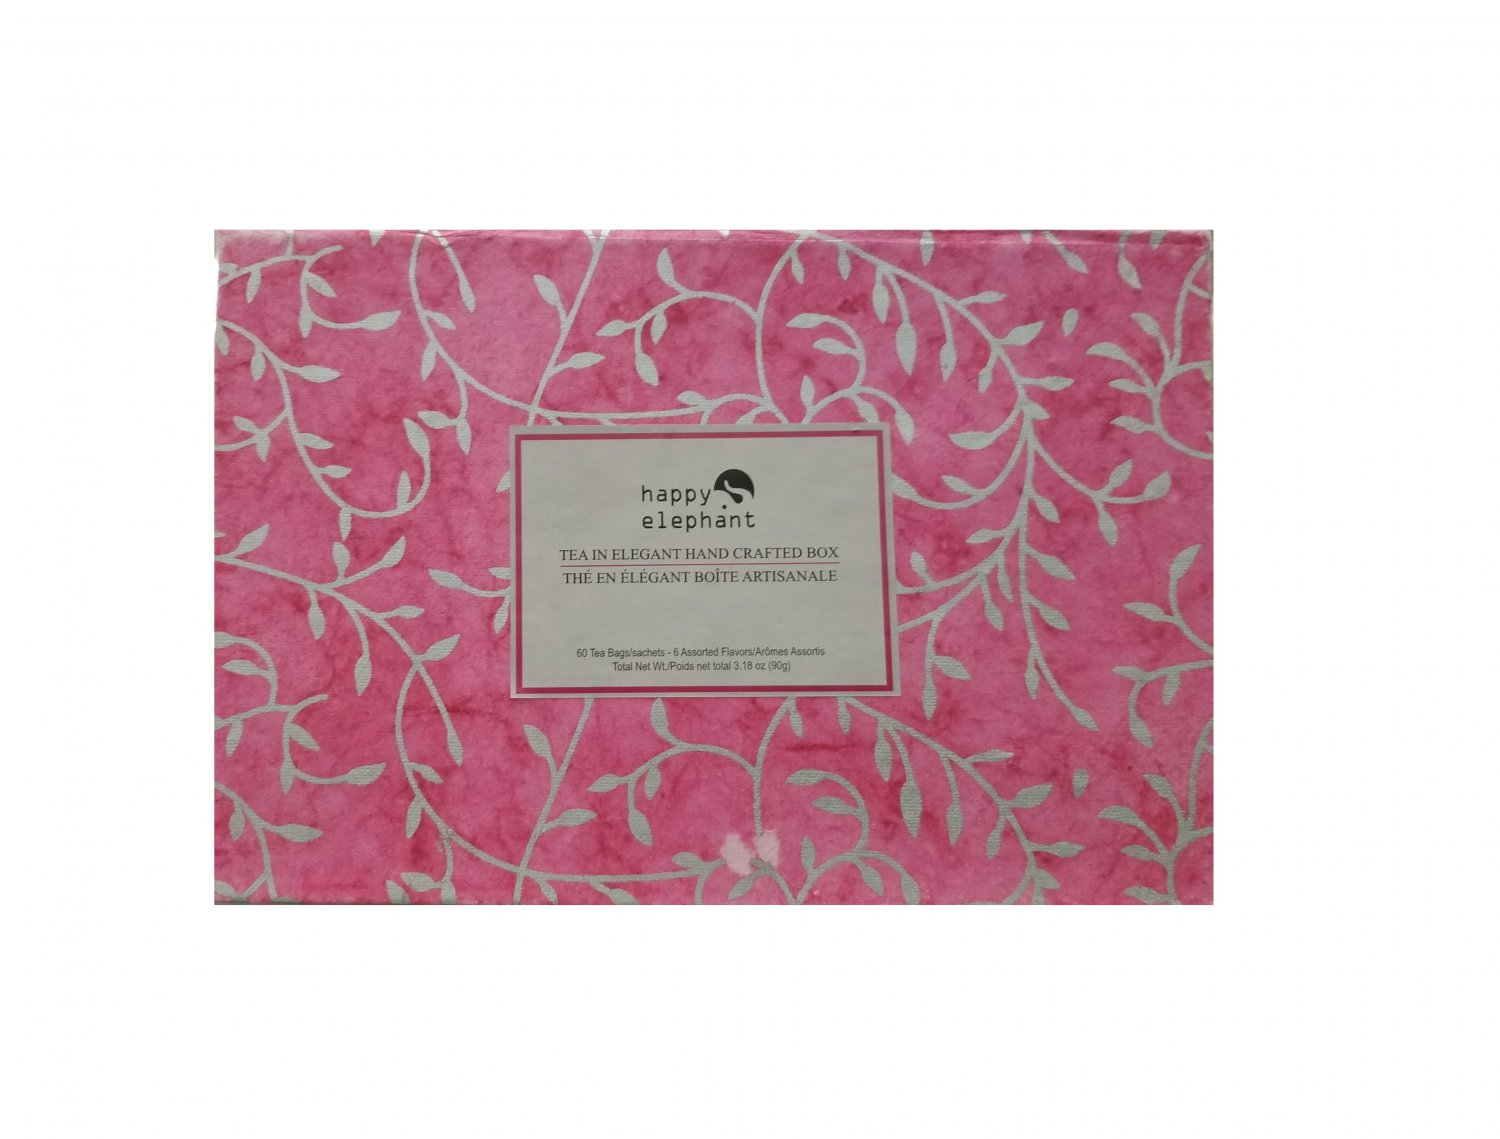 Specialty Tea Selection Happy Elephant Pink Gift Set 60 tea bags - 6 Assorted Flavors New Gift Idea